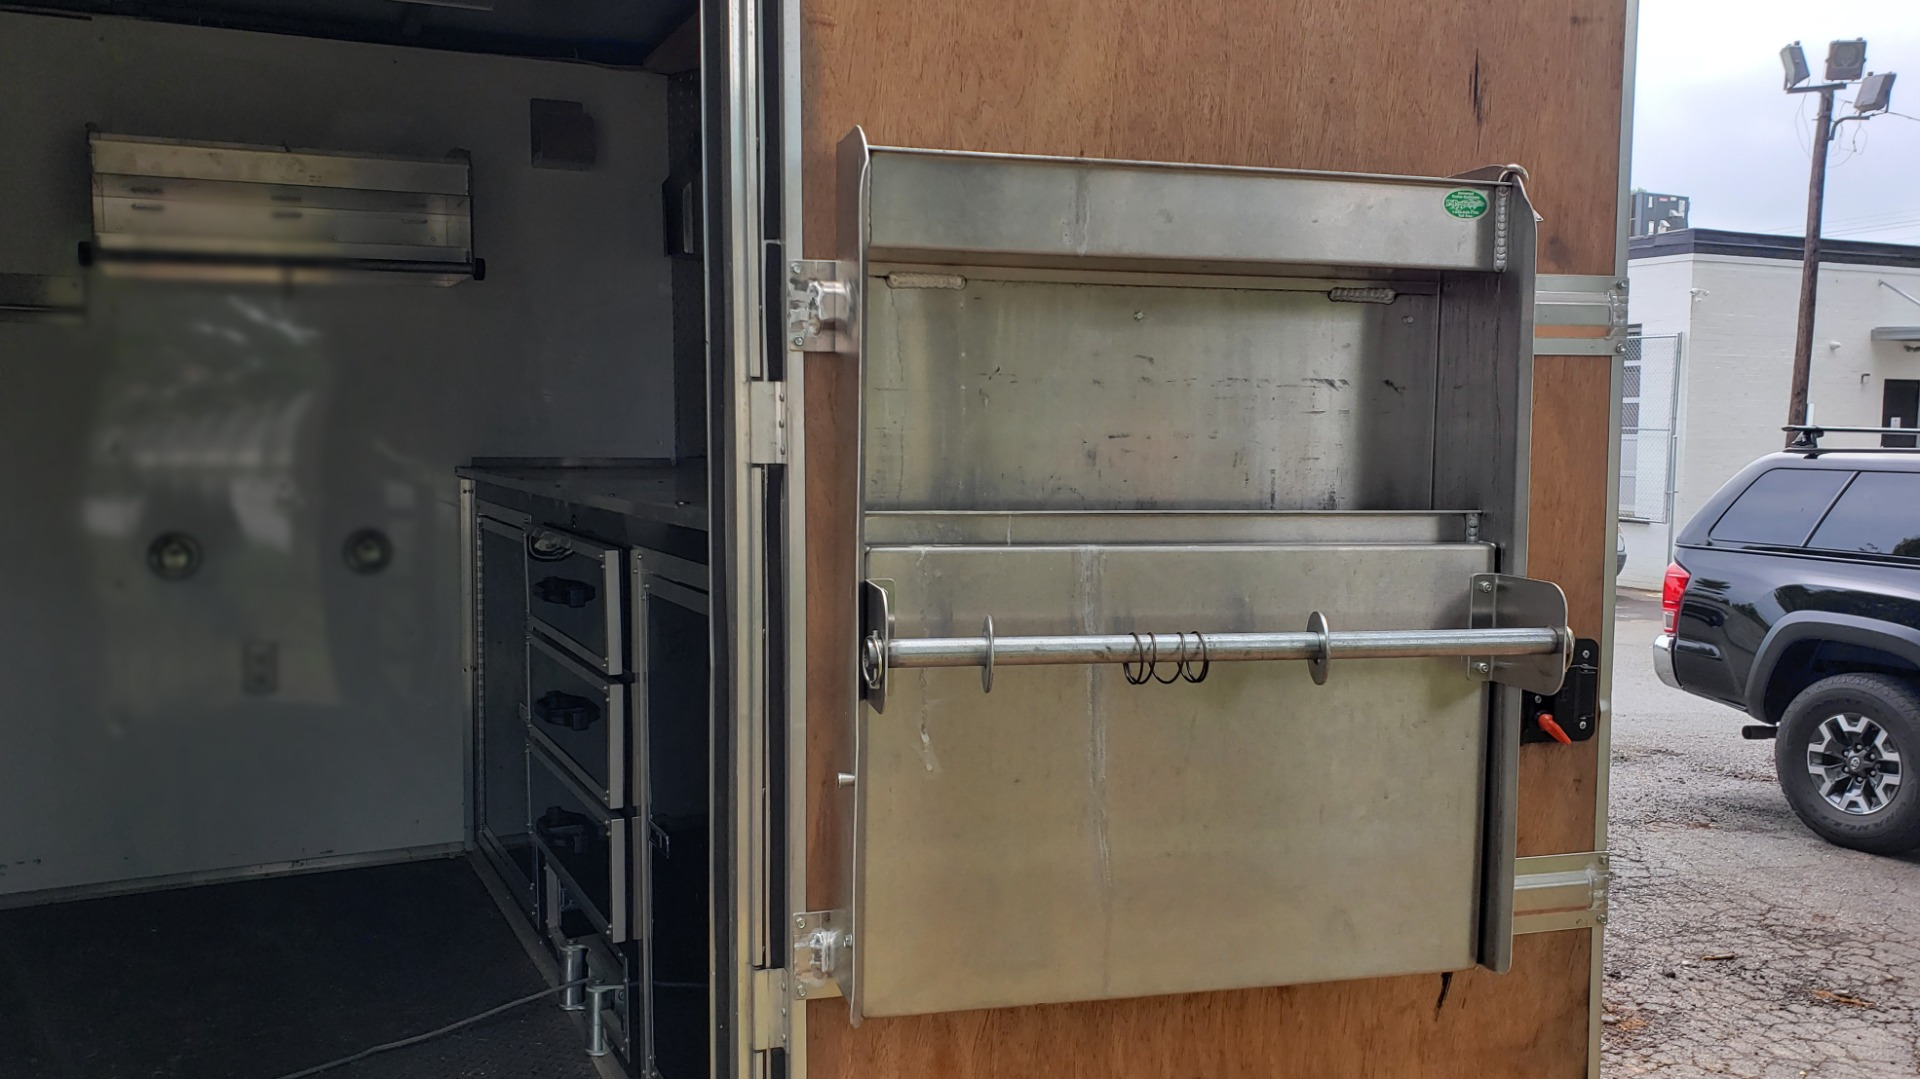 Used 2012 Hurricane 8.5x32 ENCLOSED TRAILER RAMP / AIR CONDITIONING / LOTS OF STORAGE for sale Sold at Formula Imports in Charlotte NC 28227 15